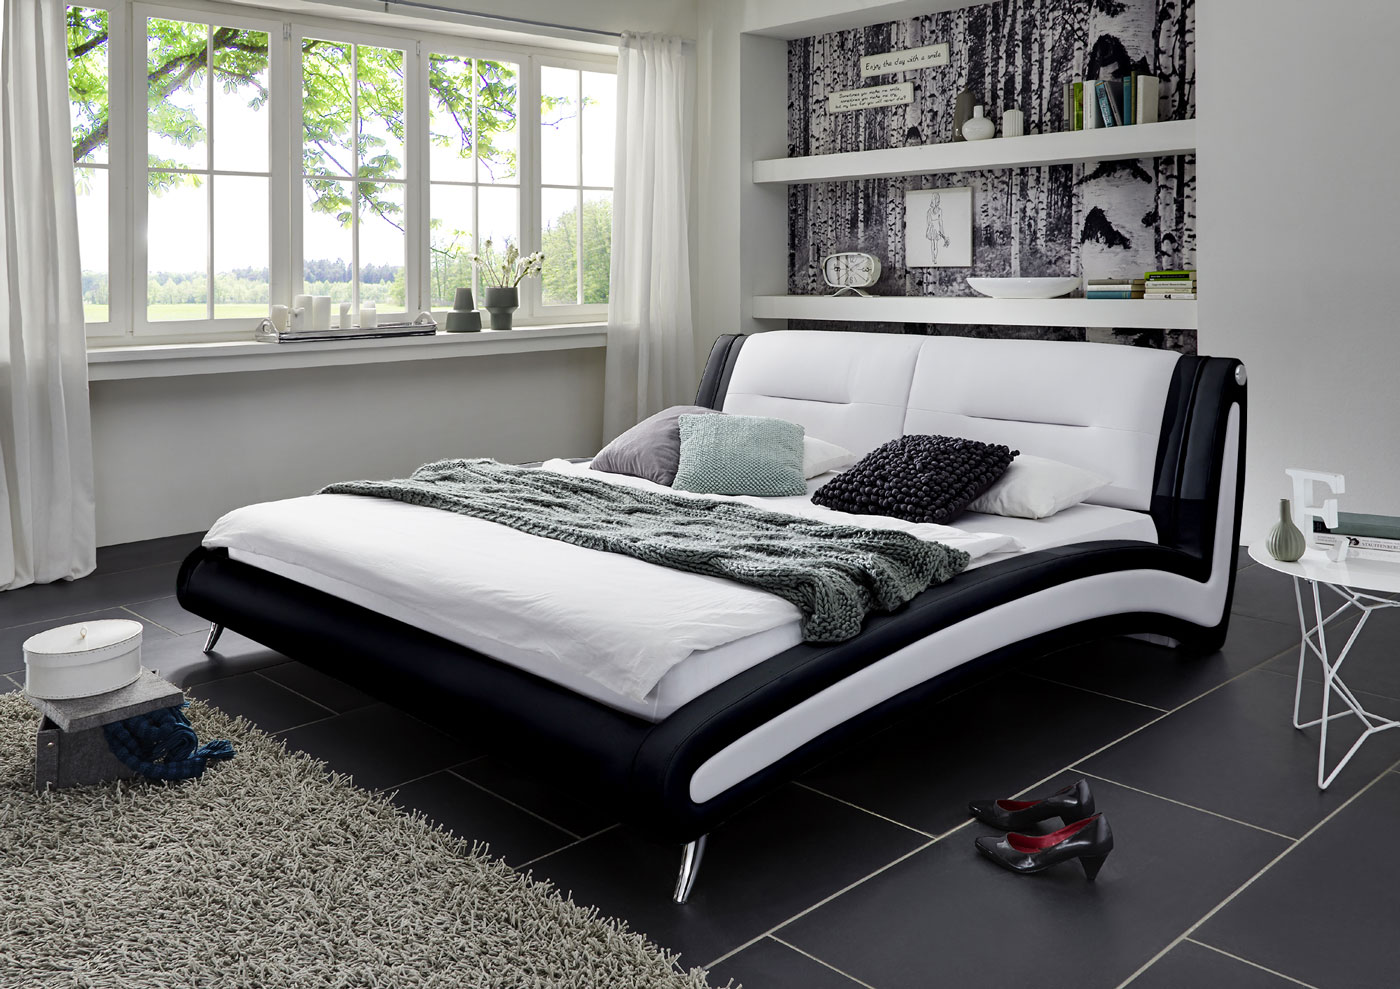 sam polsterbett doppelbett 200 x 200 cm schwarz wei swing. Black Bedroom Furniture Sets. Home Design Ideas